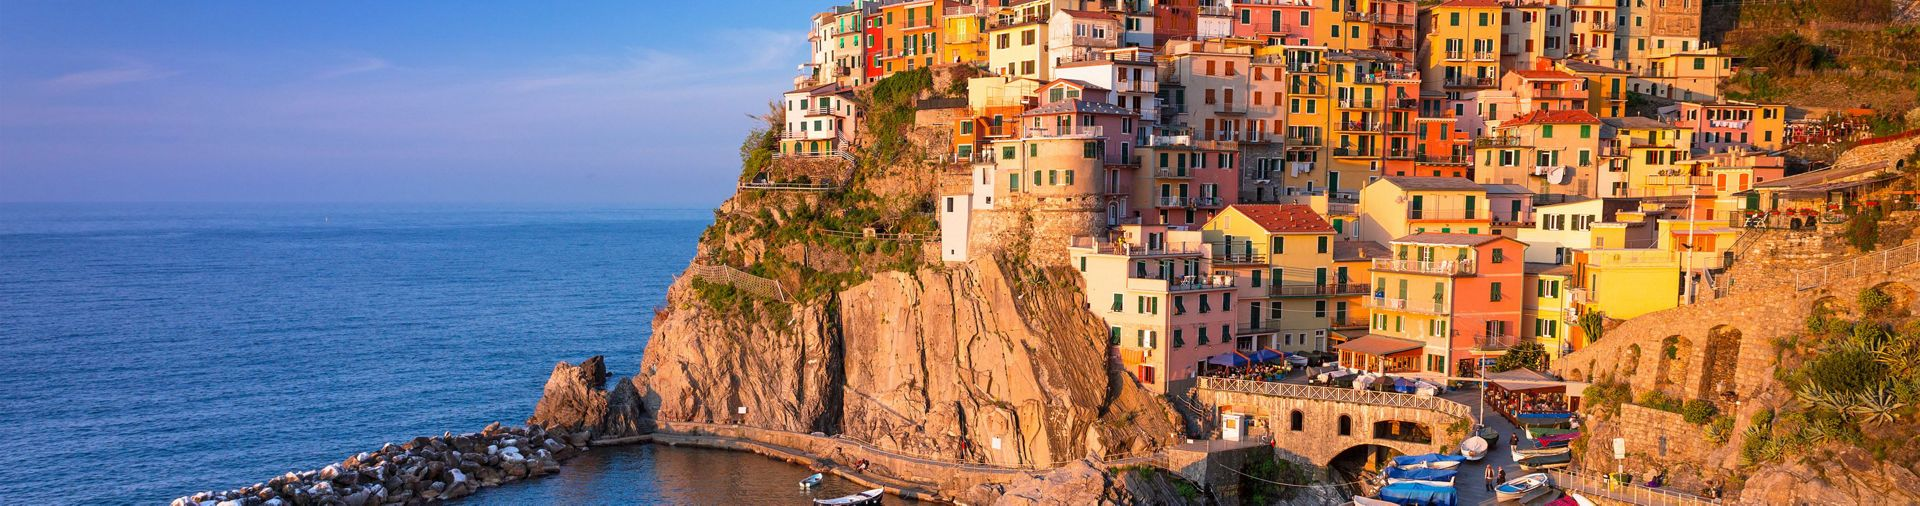 Silversea Small Luxury Cruise Ship - Mediterranean Offer